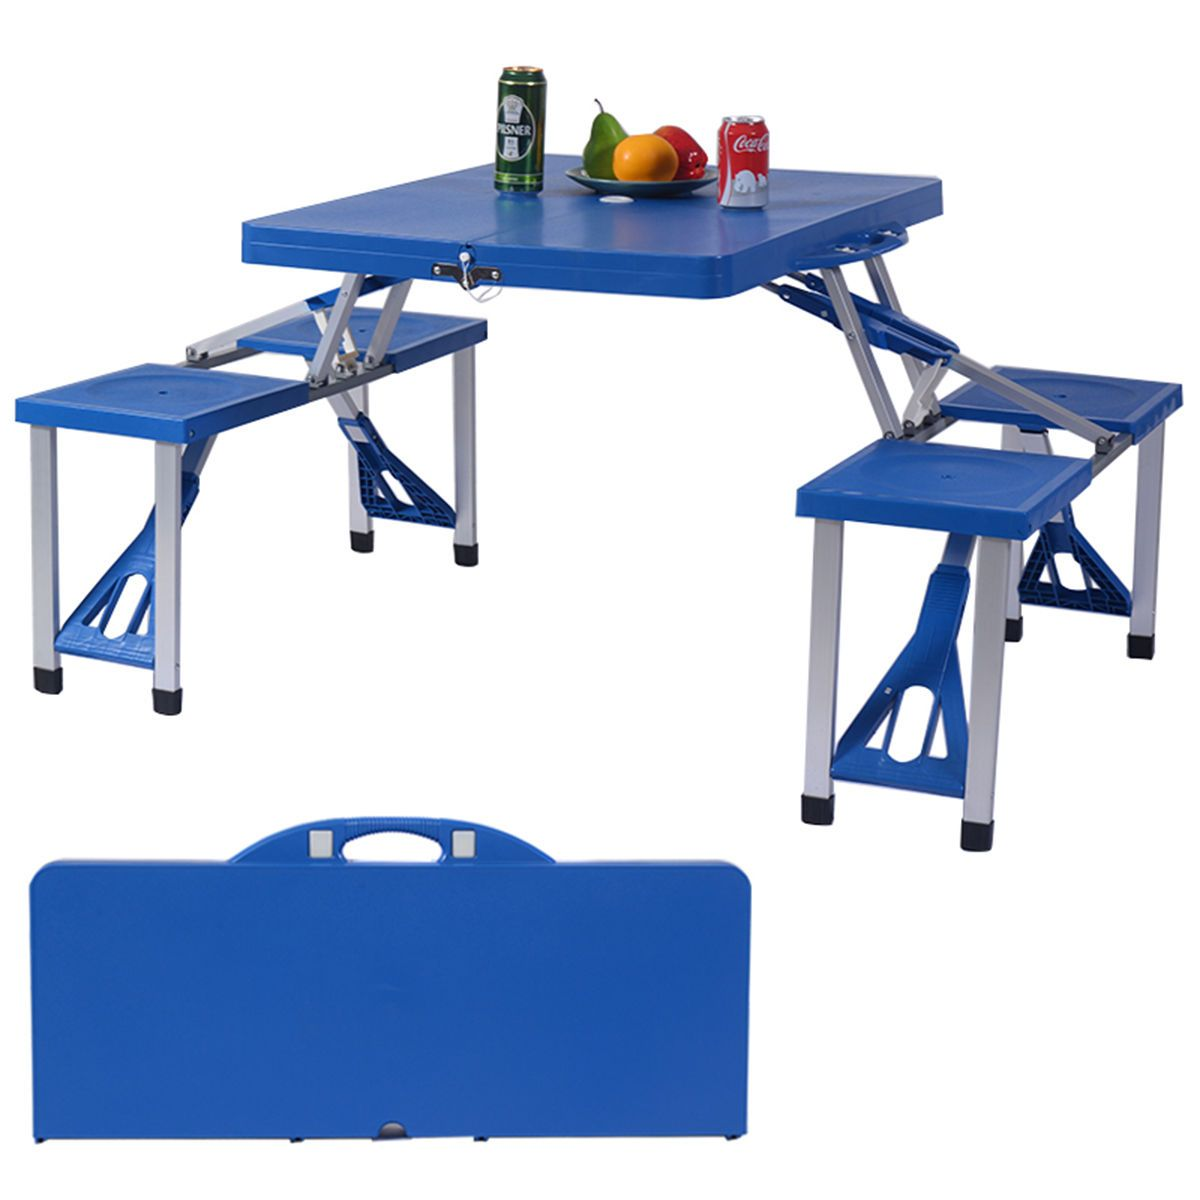 Outdoor Foldable Portable Aluminum Plastic Picnic Table